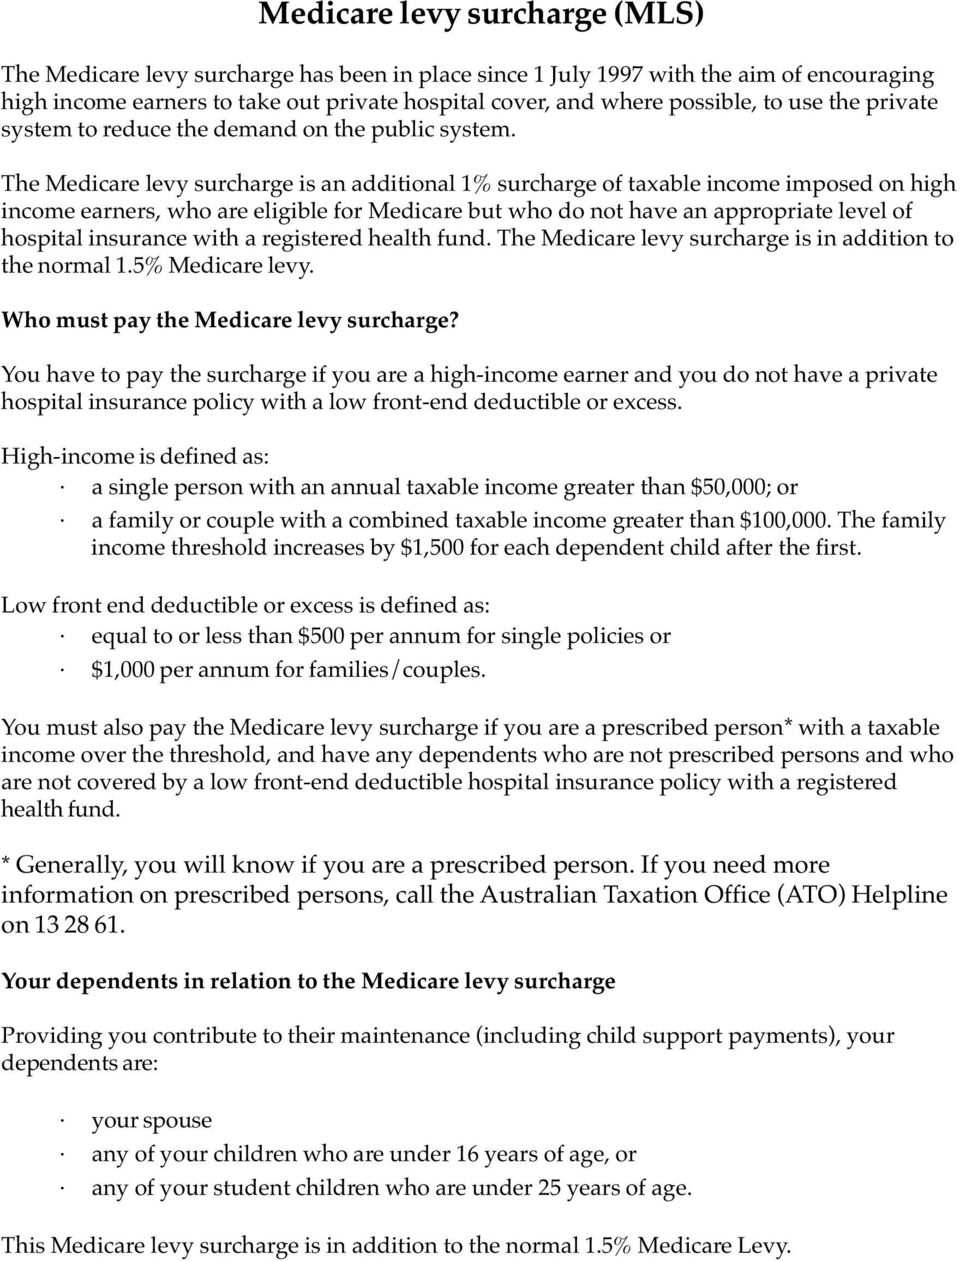 The Medicare levy surcharge is an additional 1% surcharge of taxable income imposed on high income earners, who are eligible for Medicare but who do not have an appropriate level of hospital